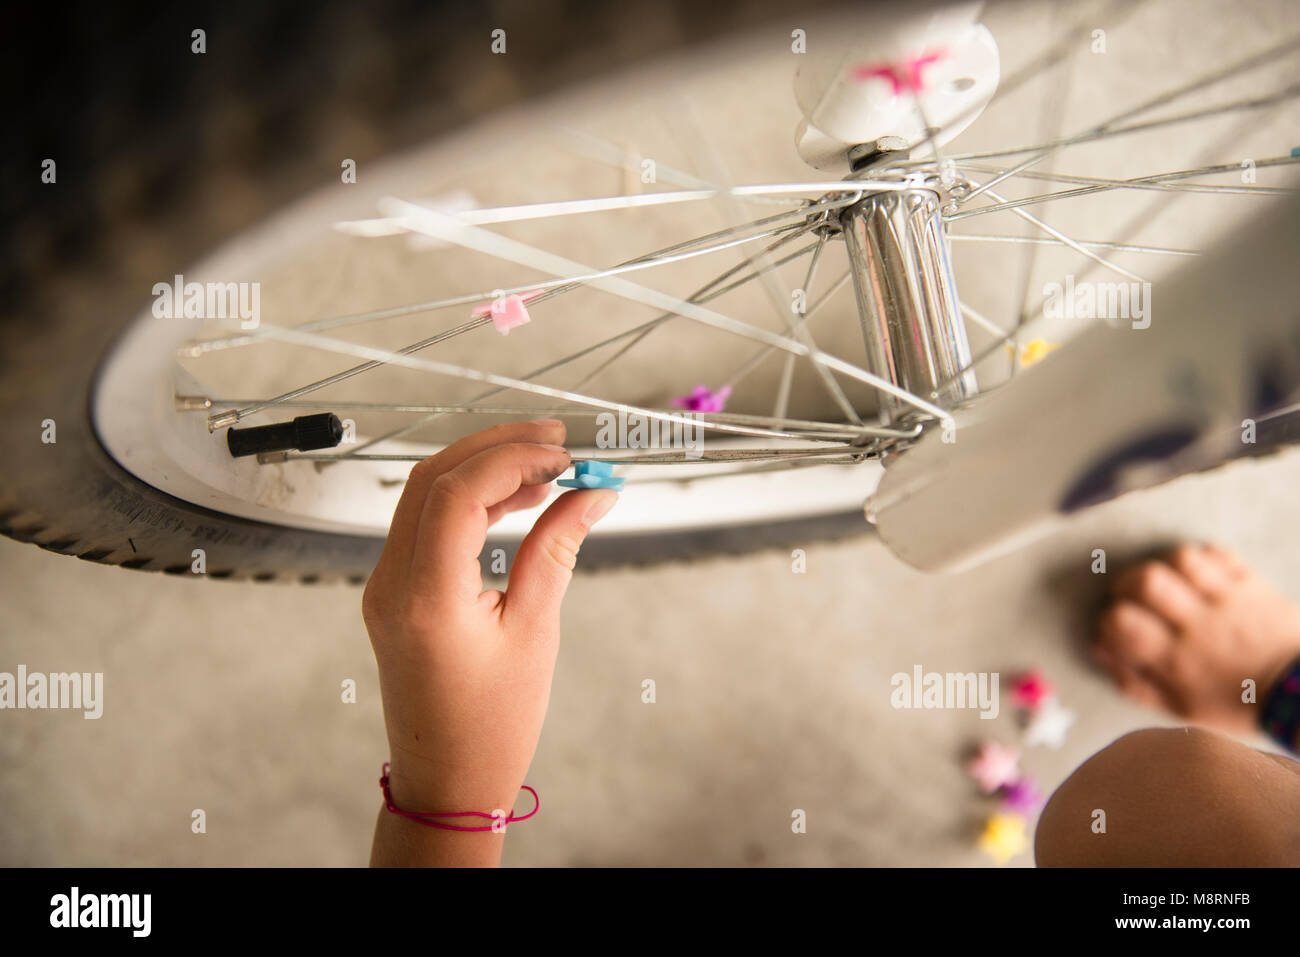 Cropped image of girl decorating bicycle tire - Stock Image